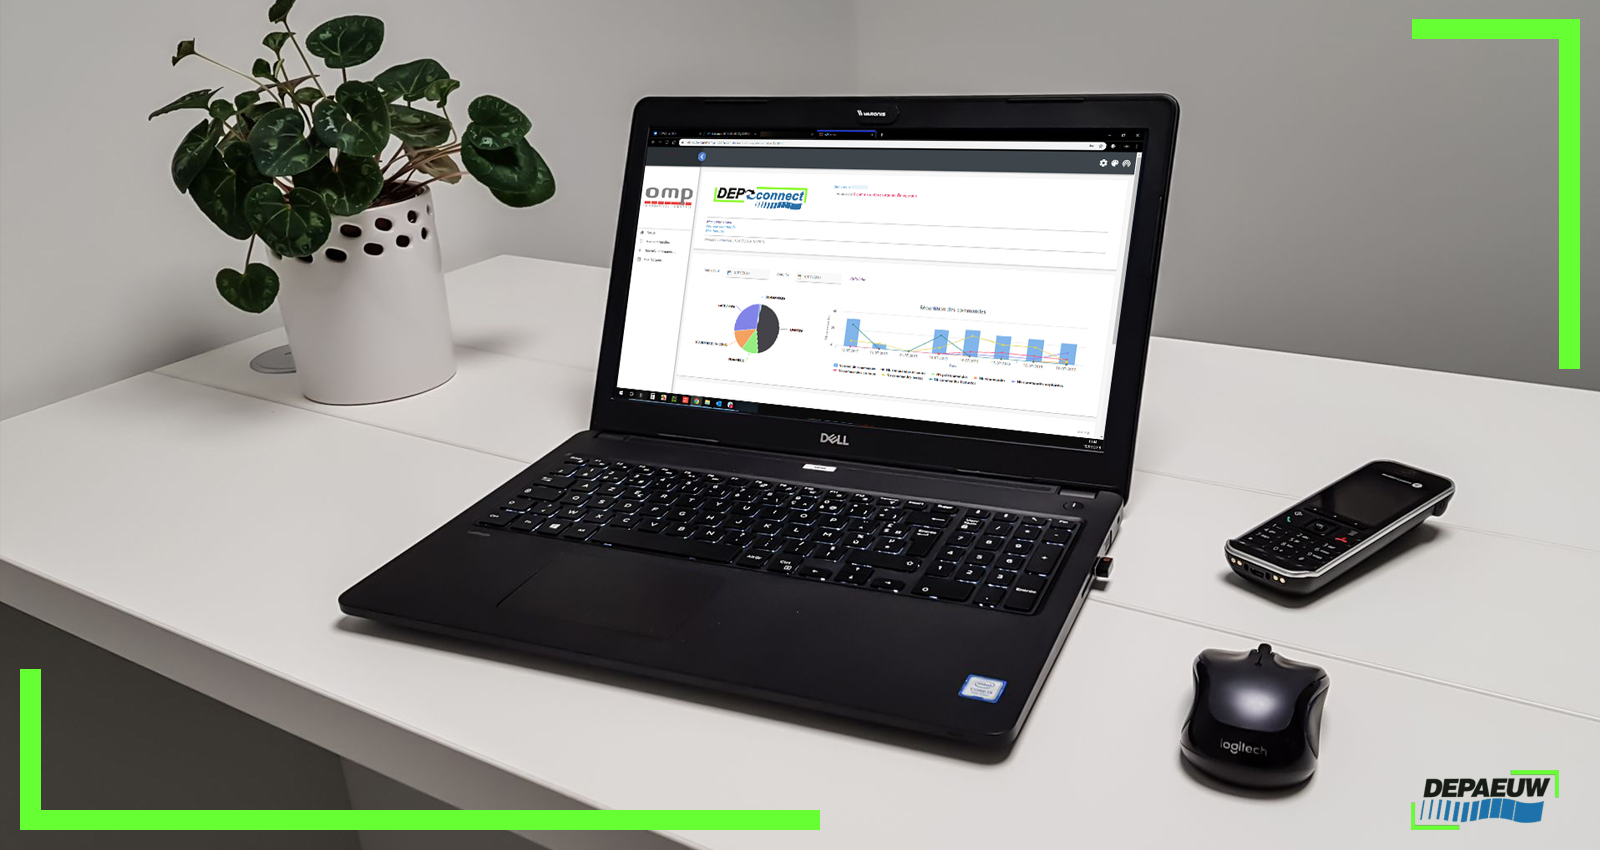 extranet depconnect laptop